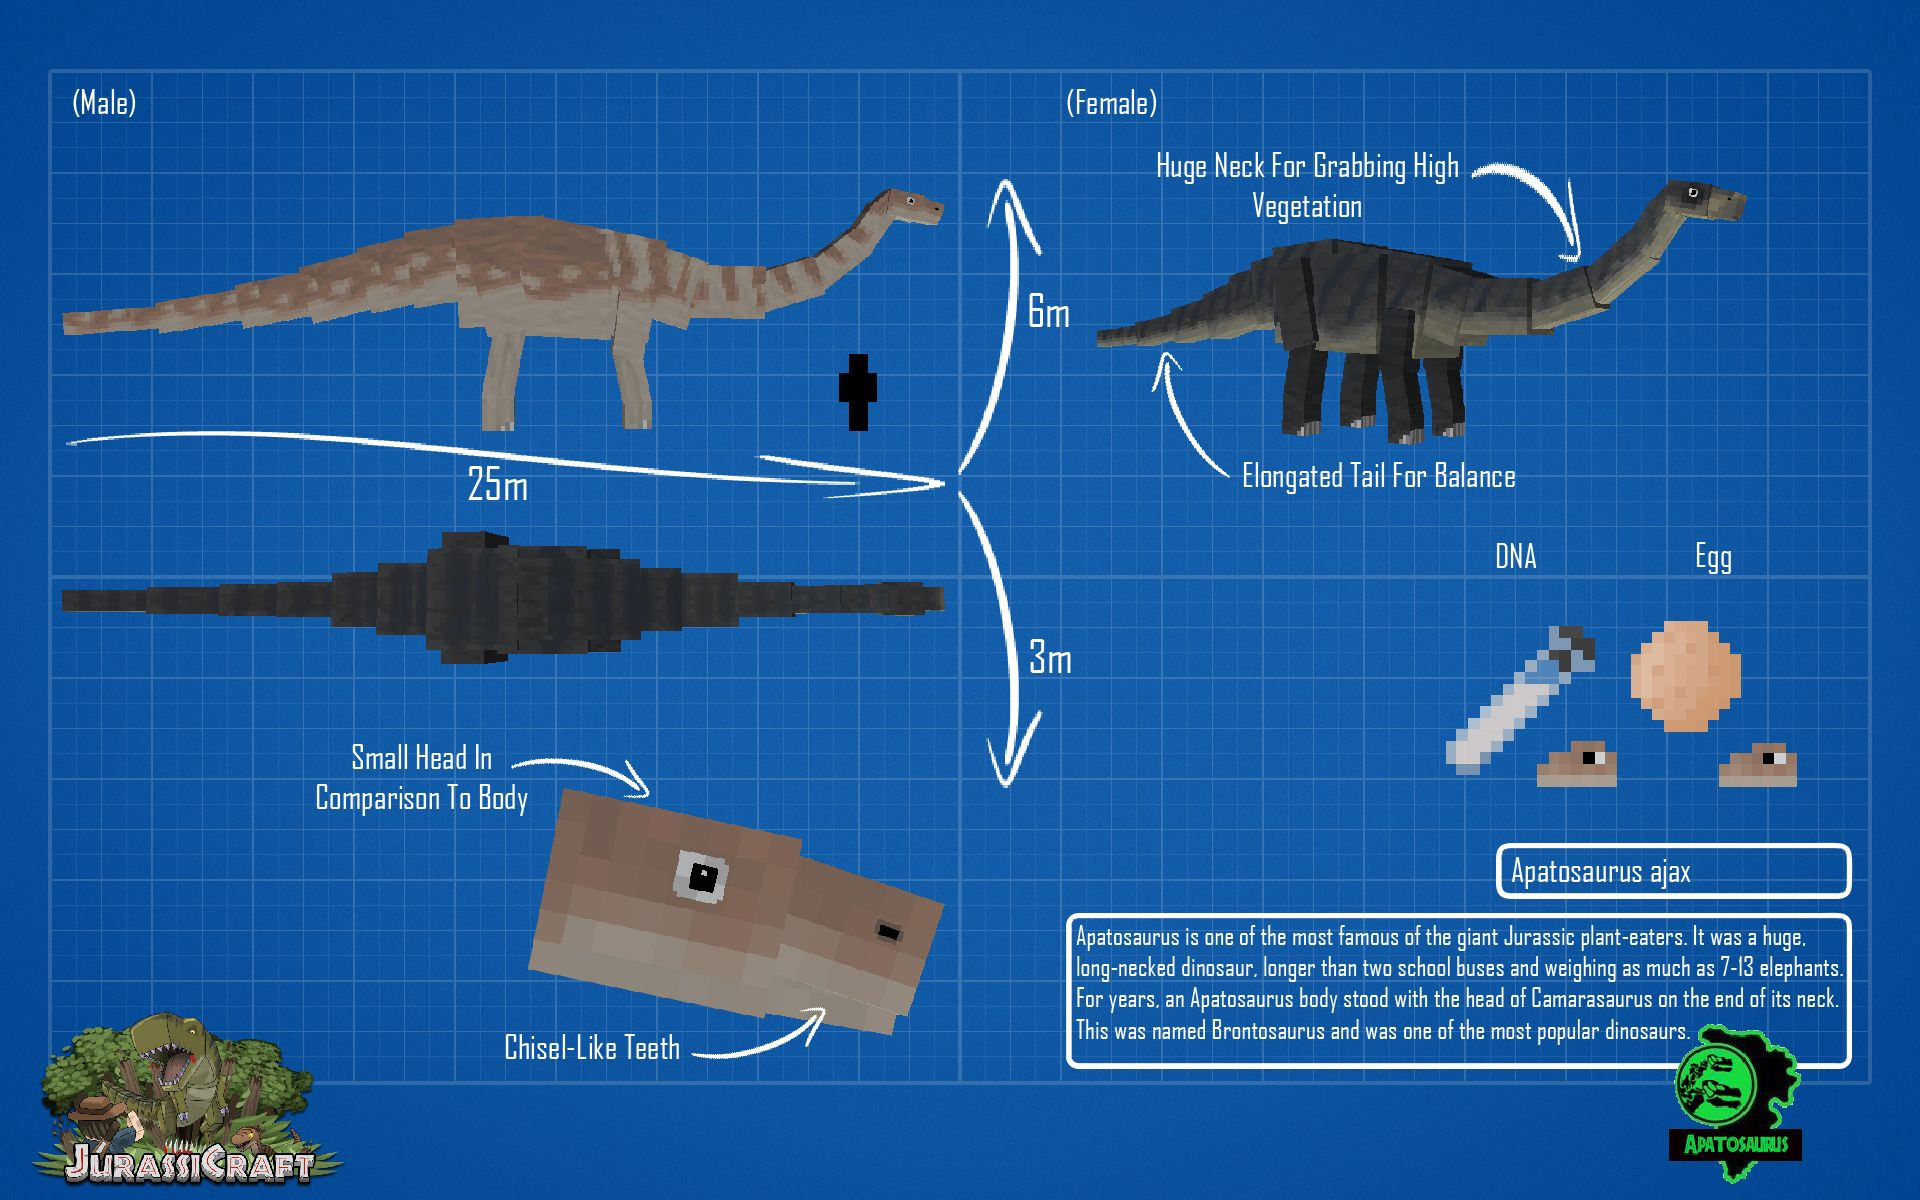 jurassic craft blueprints - Google Search | Justin stuff